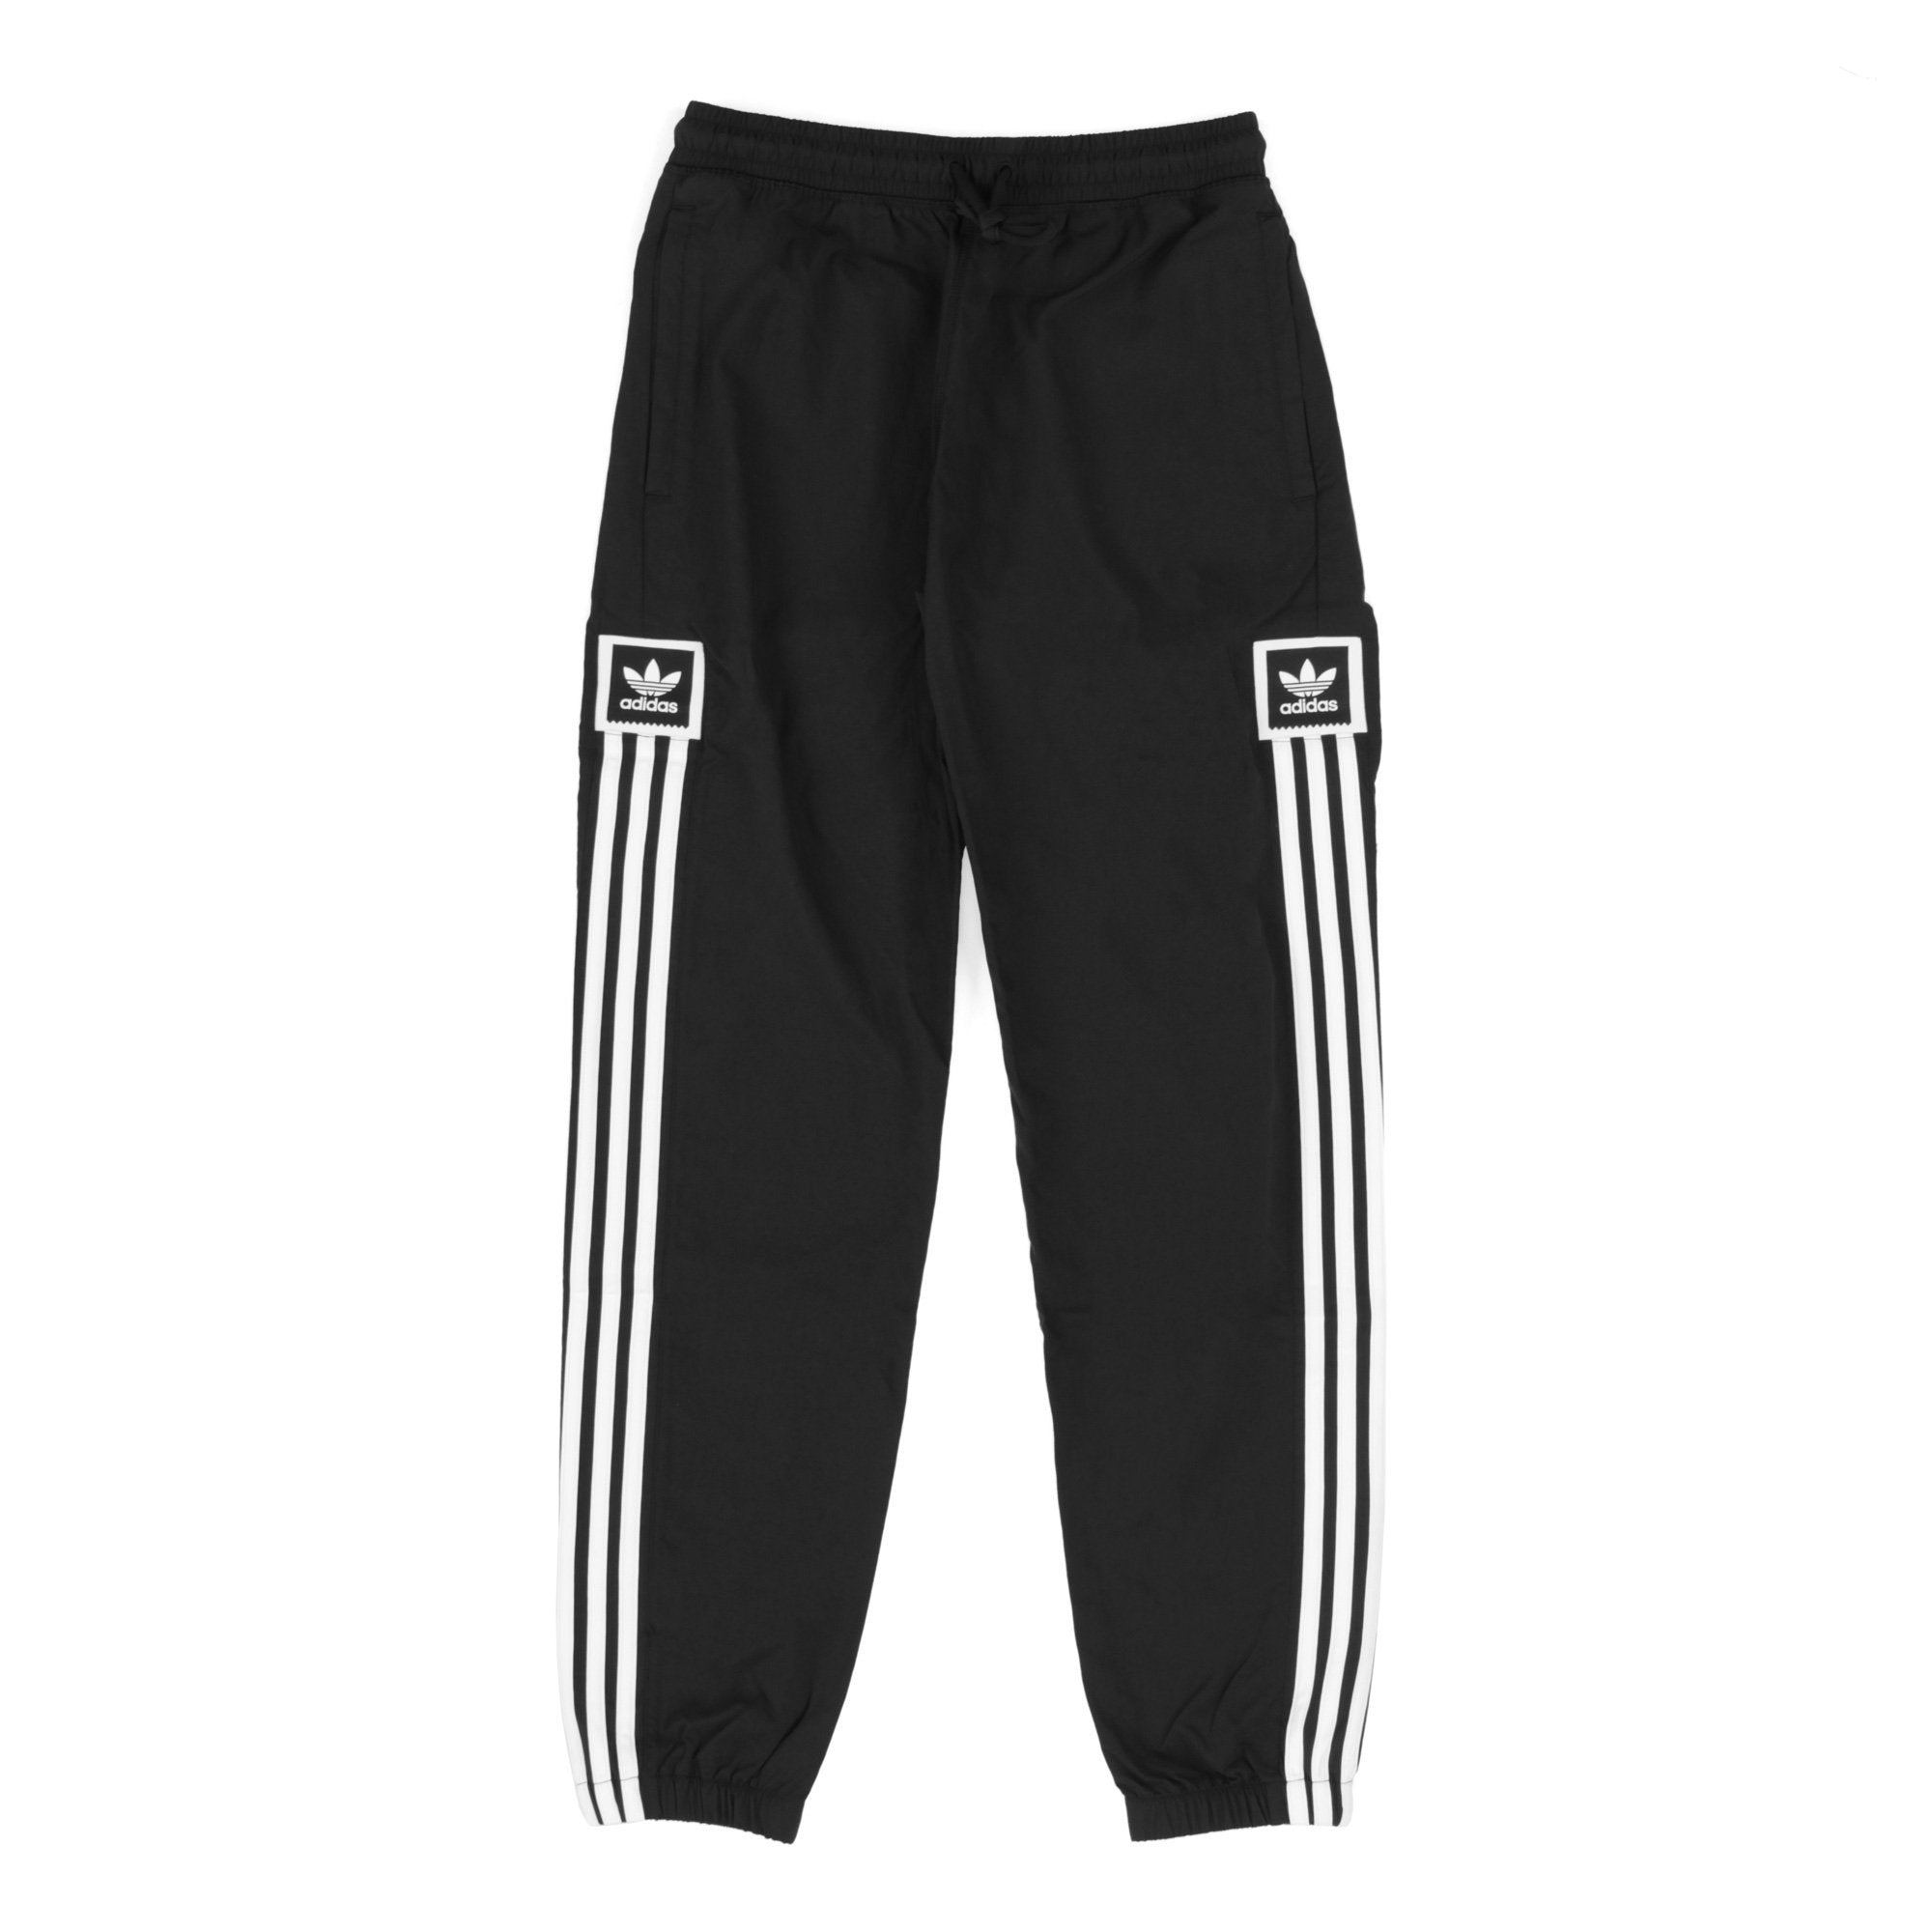 Adidas Standard Wind Pant Product Photo #1